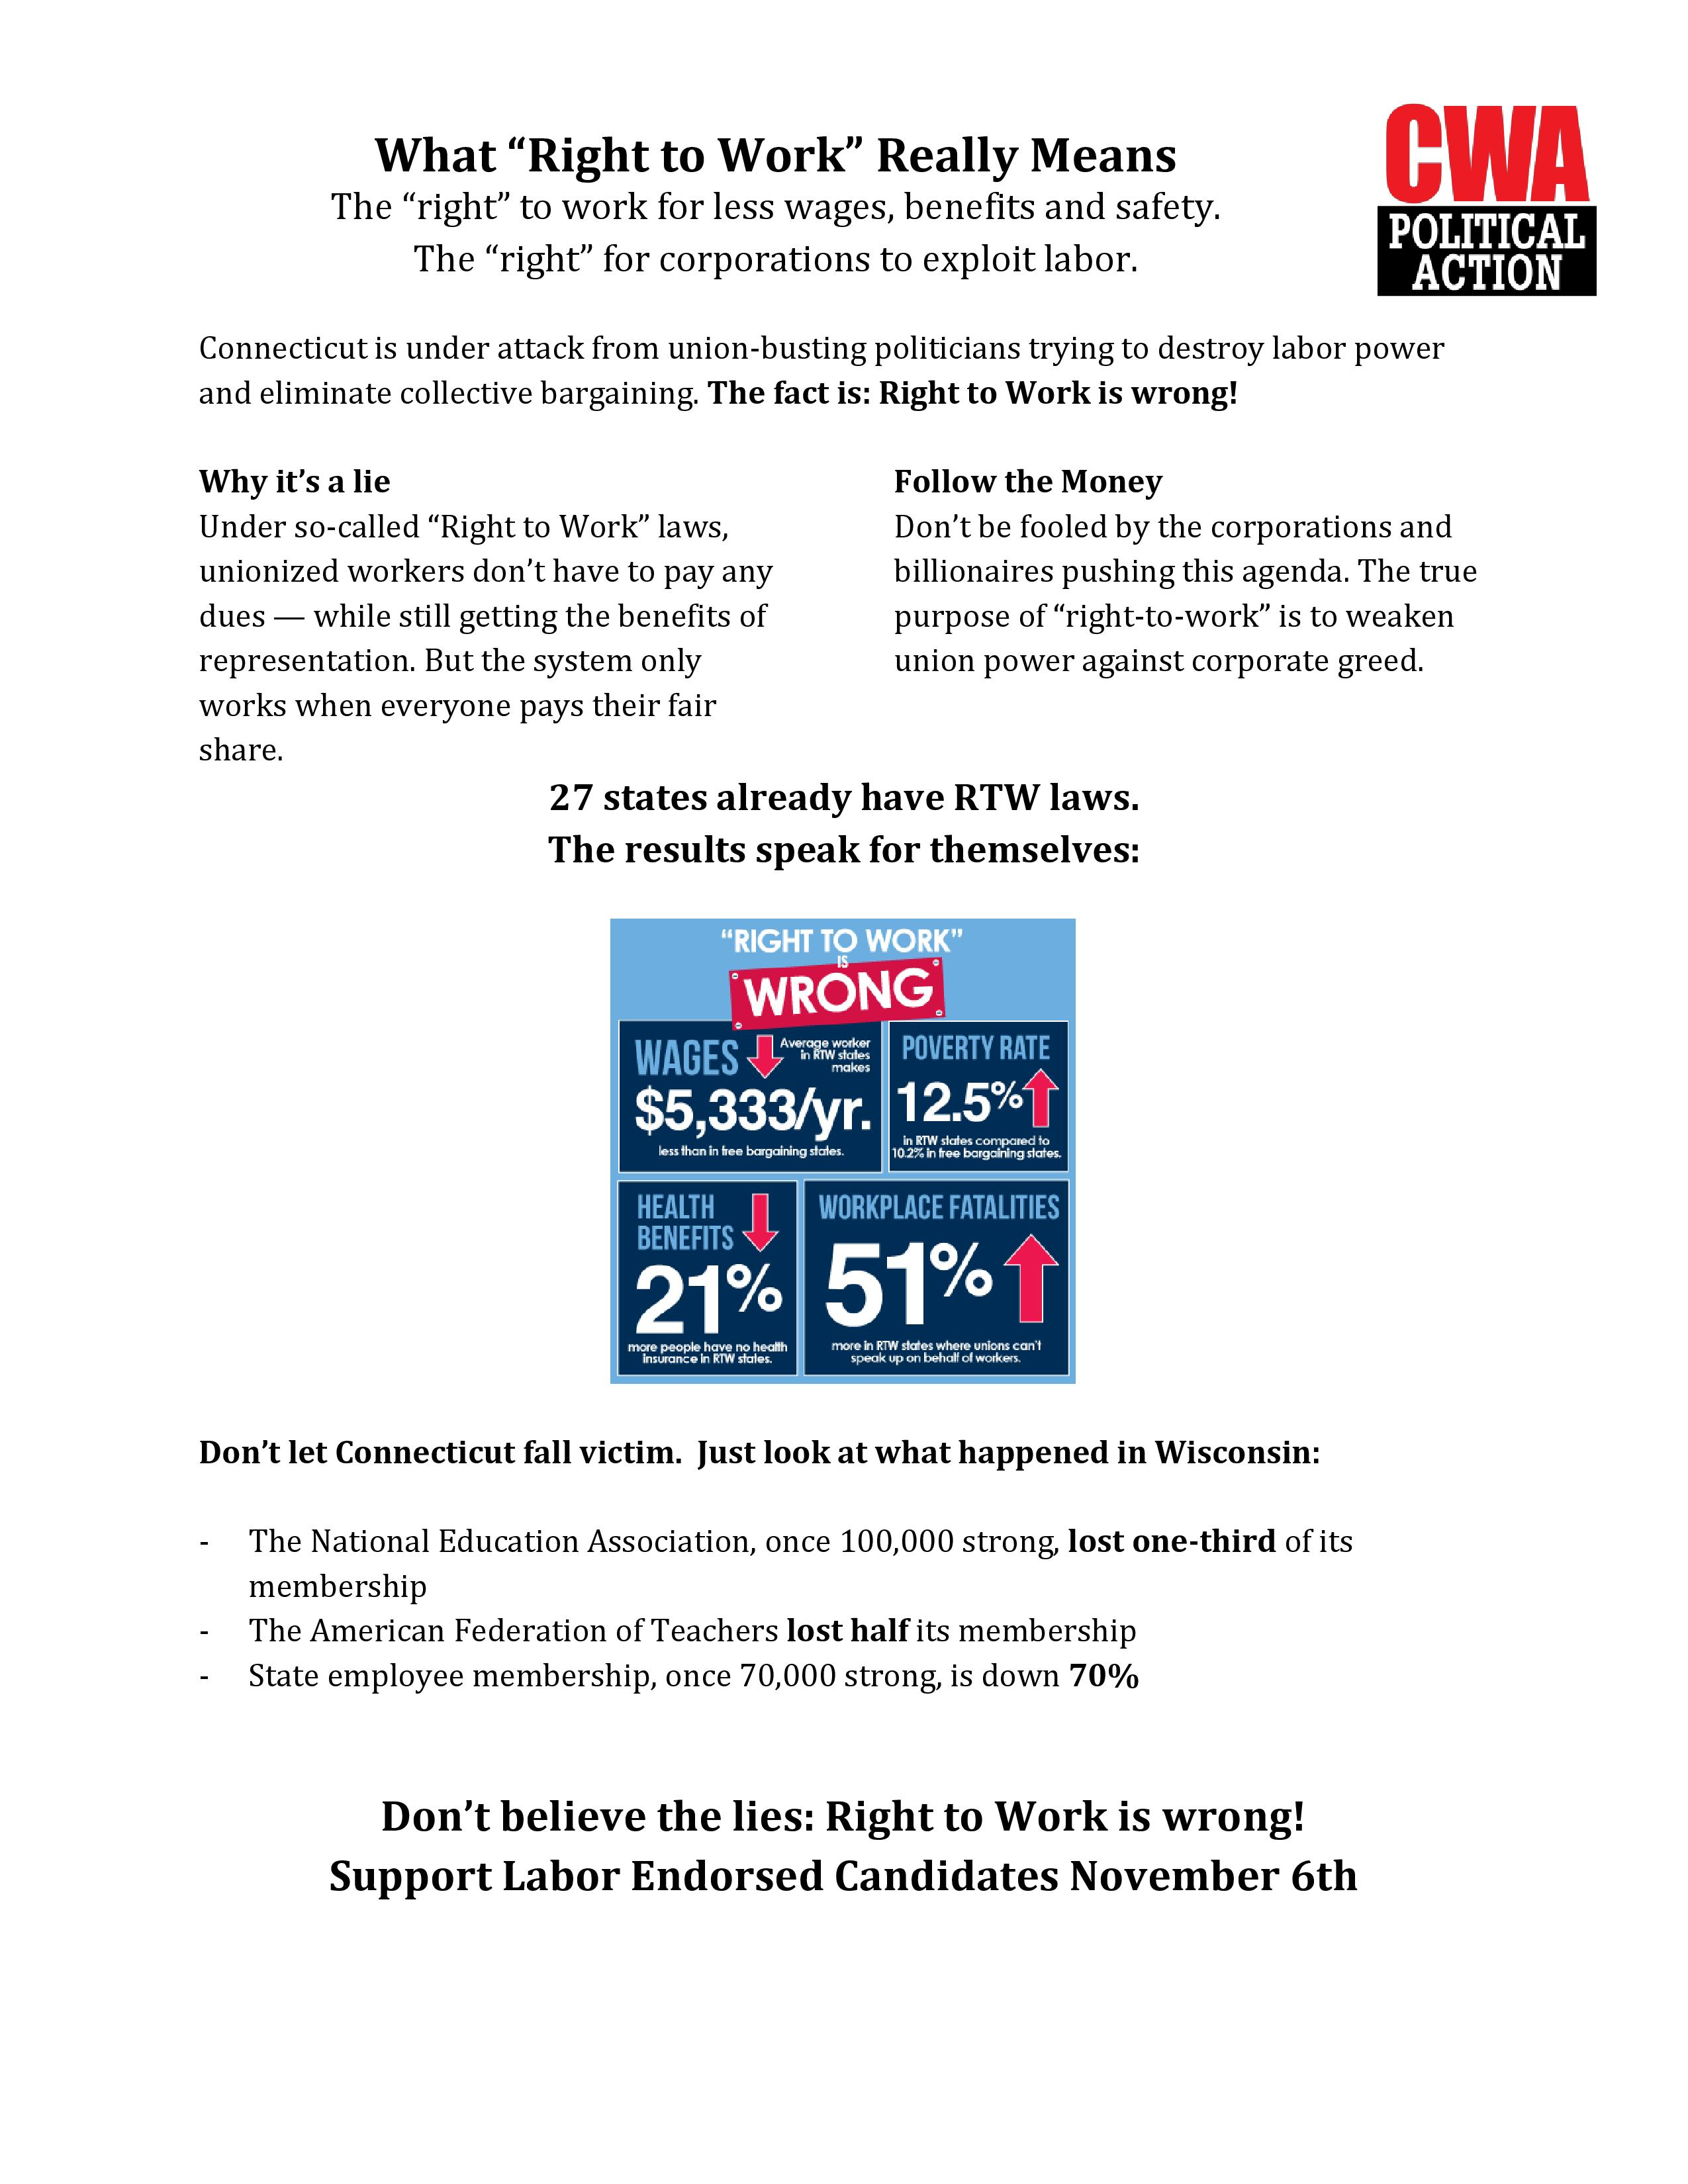 Right to work flyer